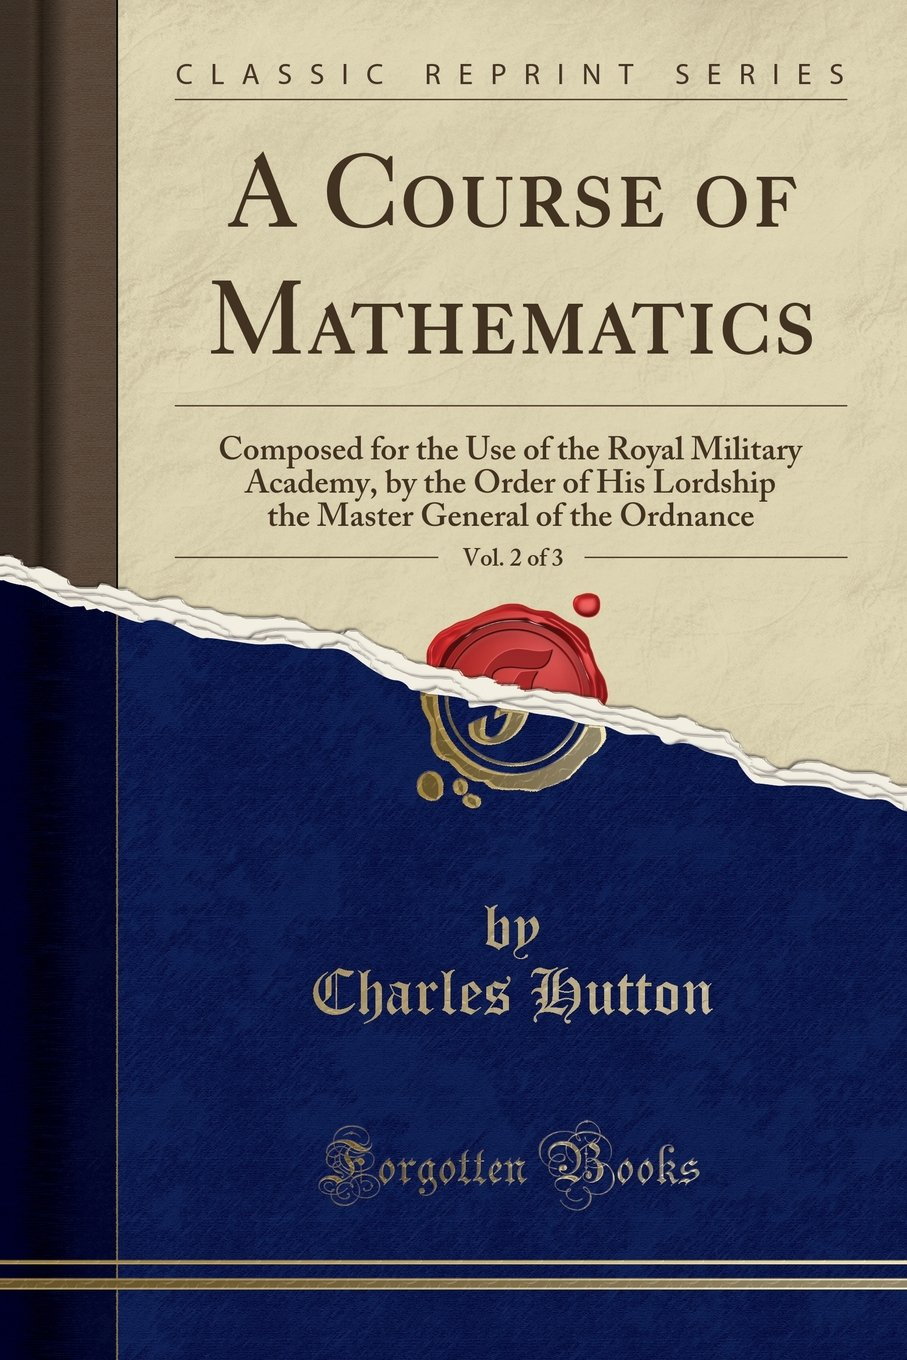 Download A Course of Mathematics, Vol. 2 of 3: Composed for the Use of the Royal Military Academy, by the Order of His Lordship the Master General of the Ordnance (Classic Reprint) pdf